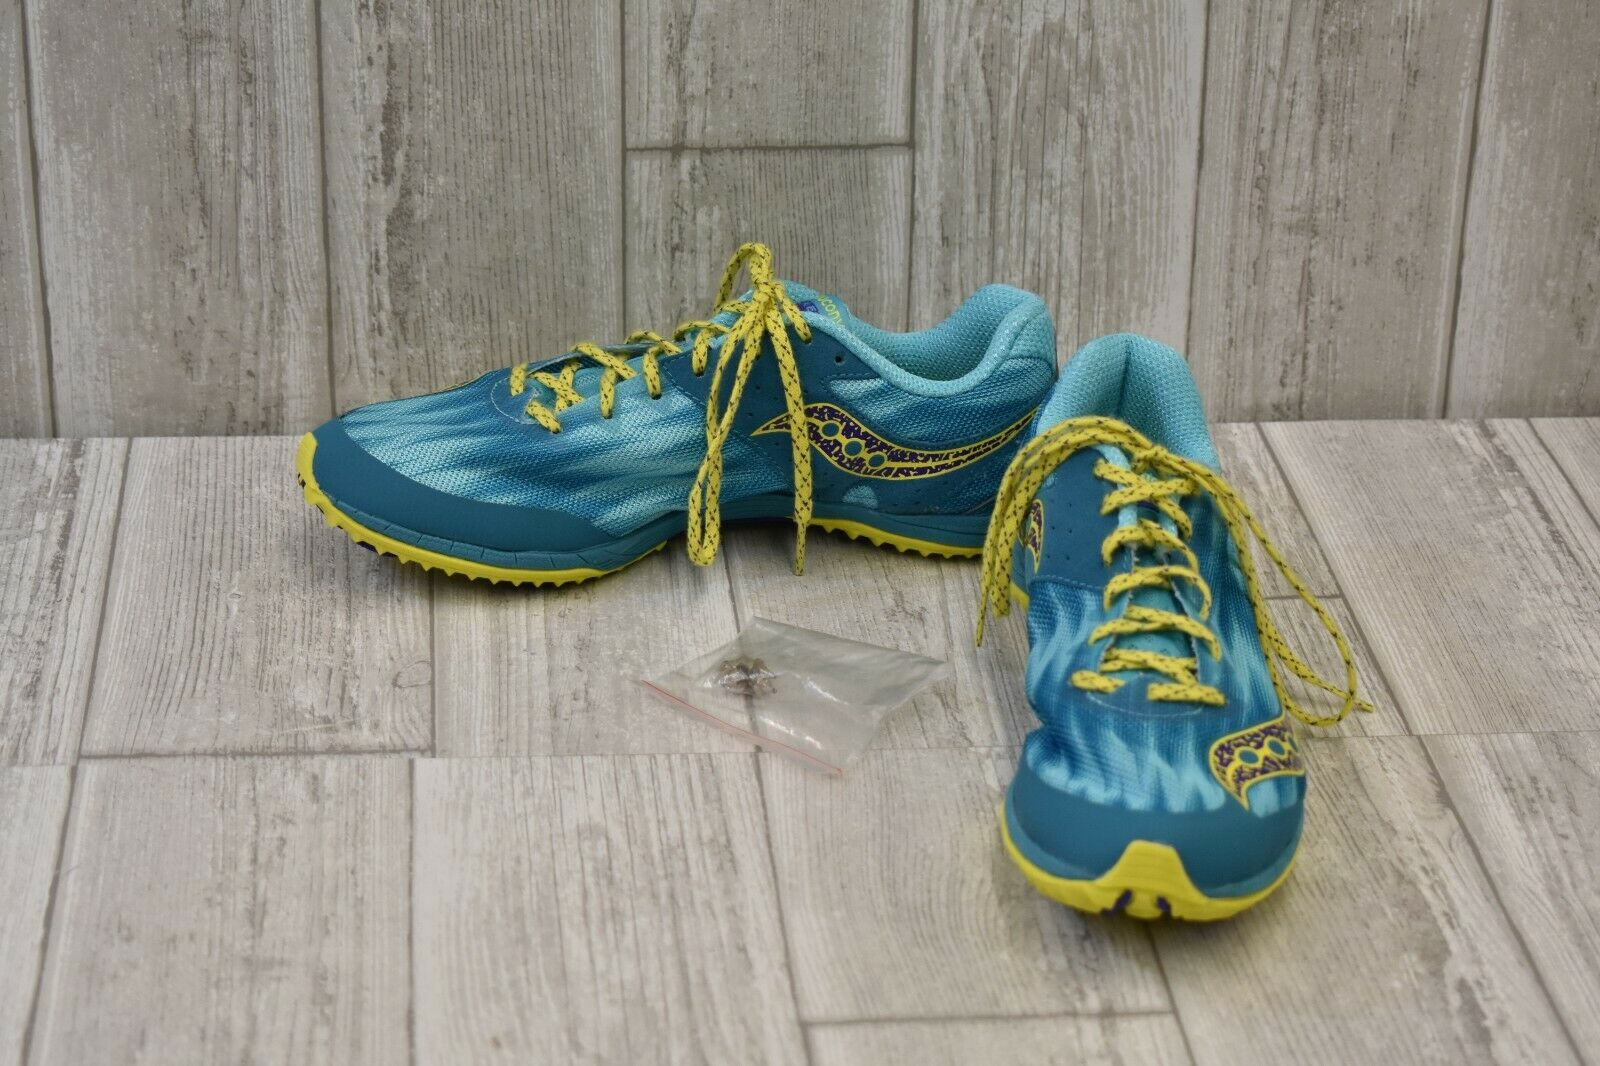 Kilkenny XC Spike Cross Country Cleats - Women's Size 9.5 - Teal Lime